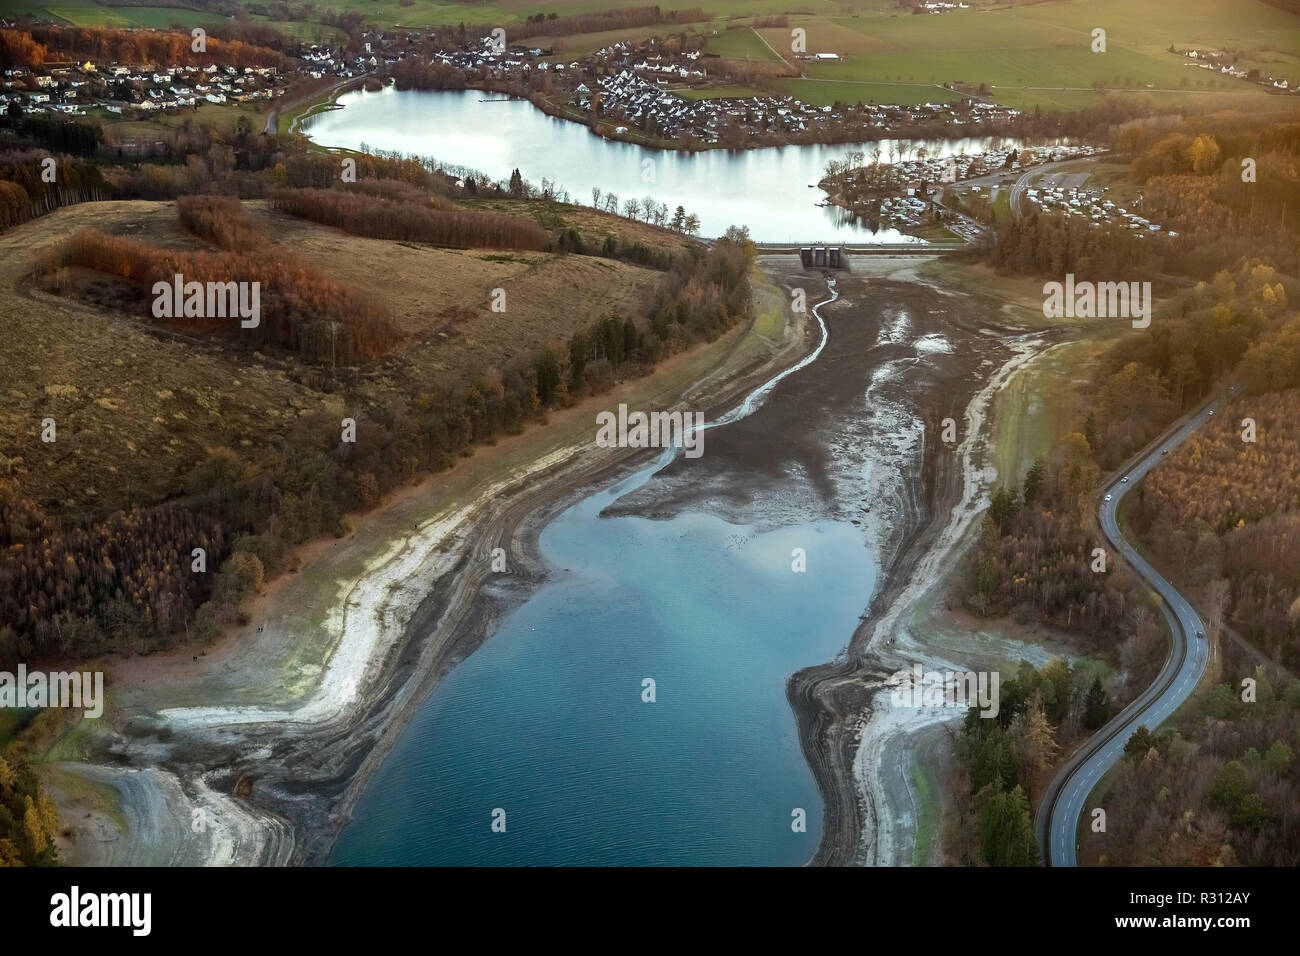 Aerial view, Sorpesee, low water level, low water, wide dry shore area, Sorpesee with forebay, Amecke, Bruchhausen, Sundern, Sauerland, North Rhine-We - Stock Image